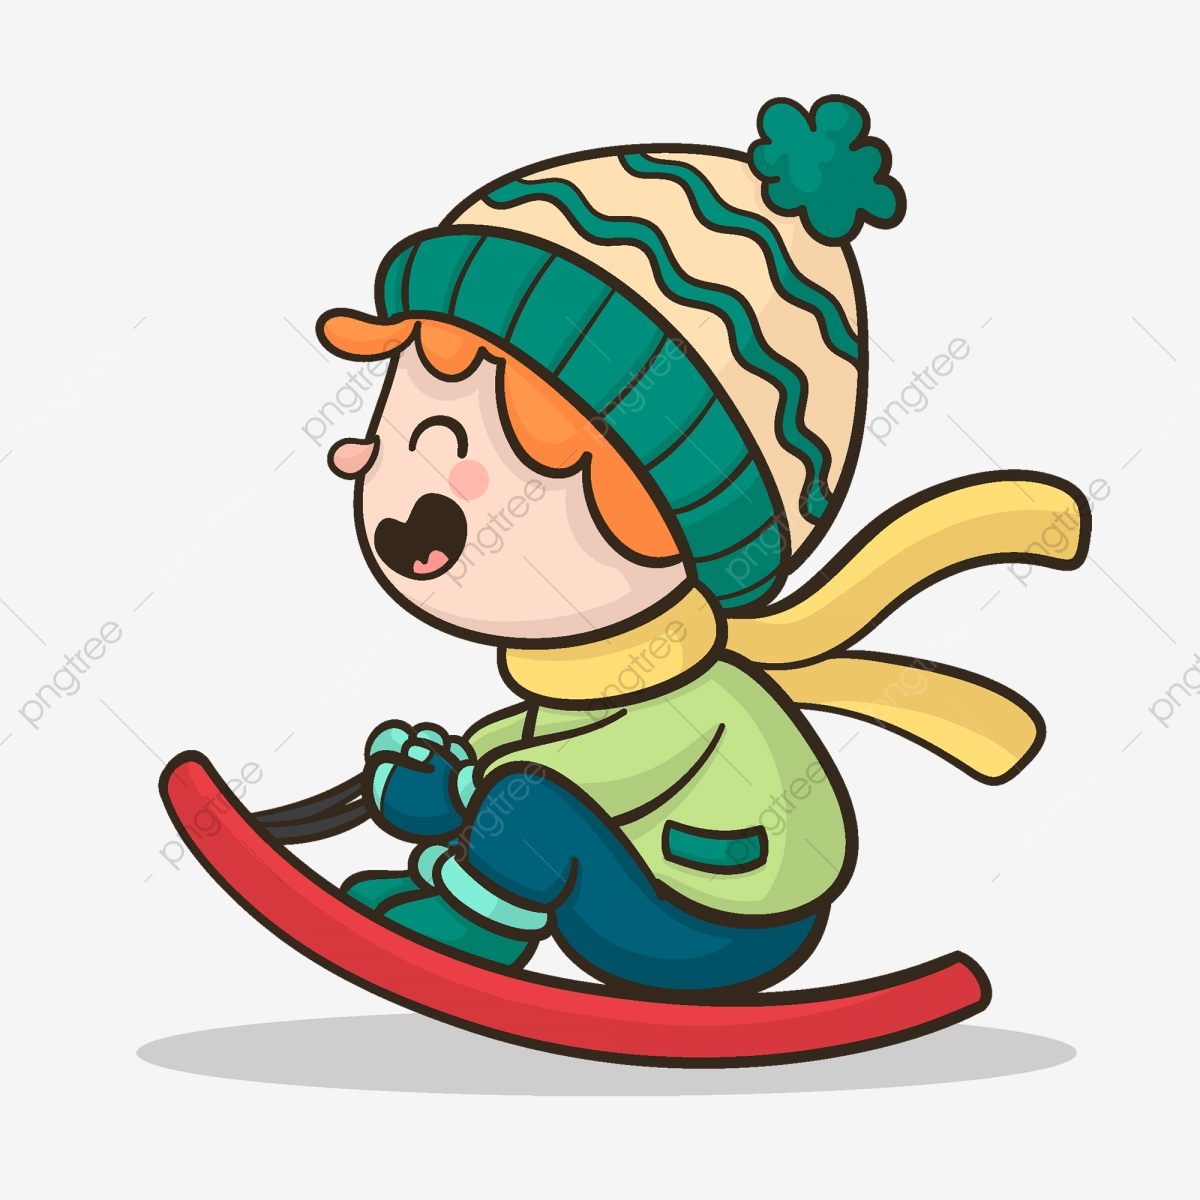 Boy Element Sitting On Snowboarding Happy Skateboard Winter Png And Vector With Transparent Background For Free Download